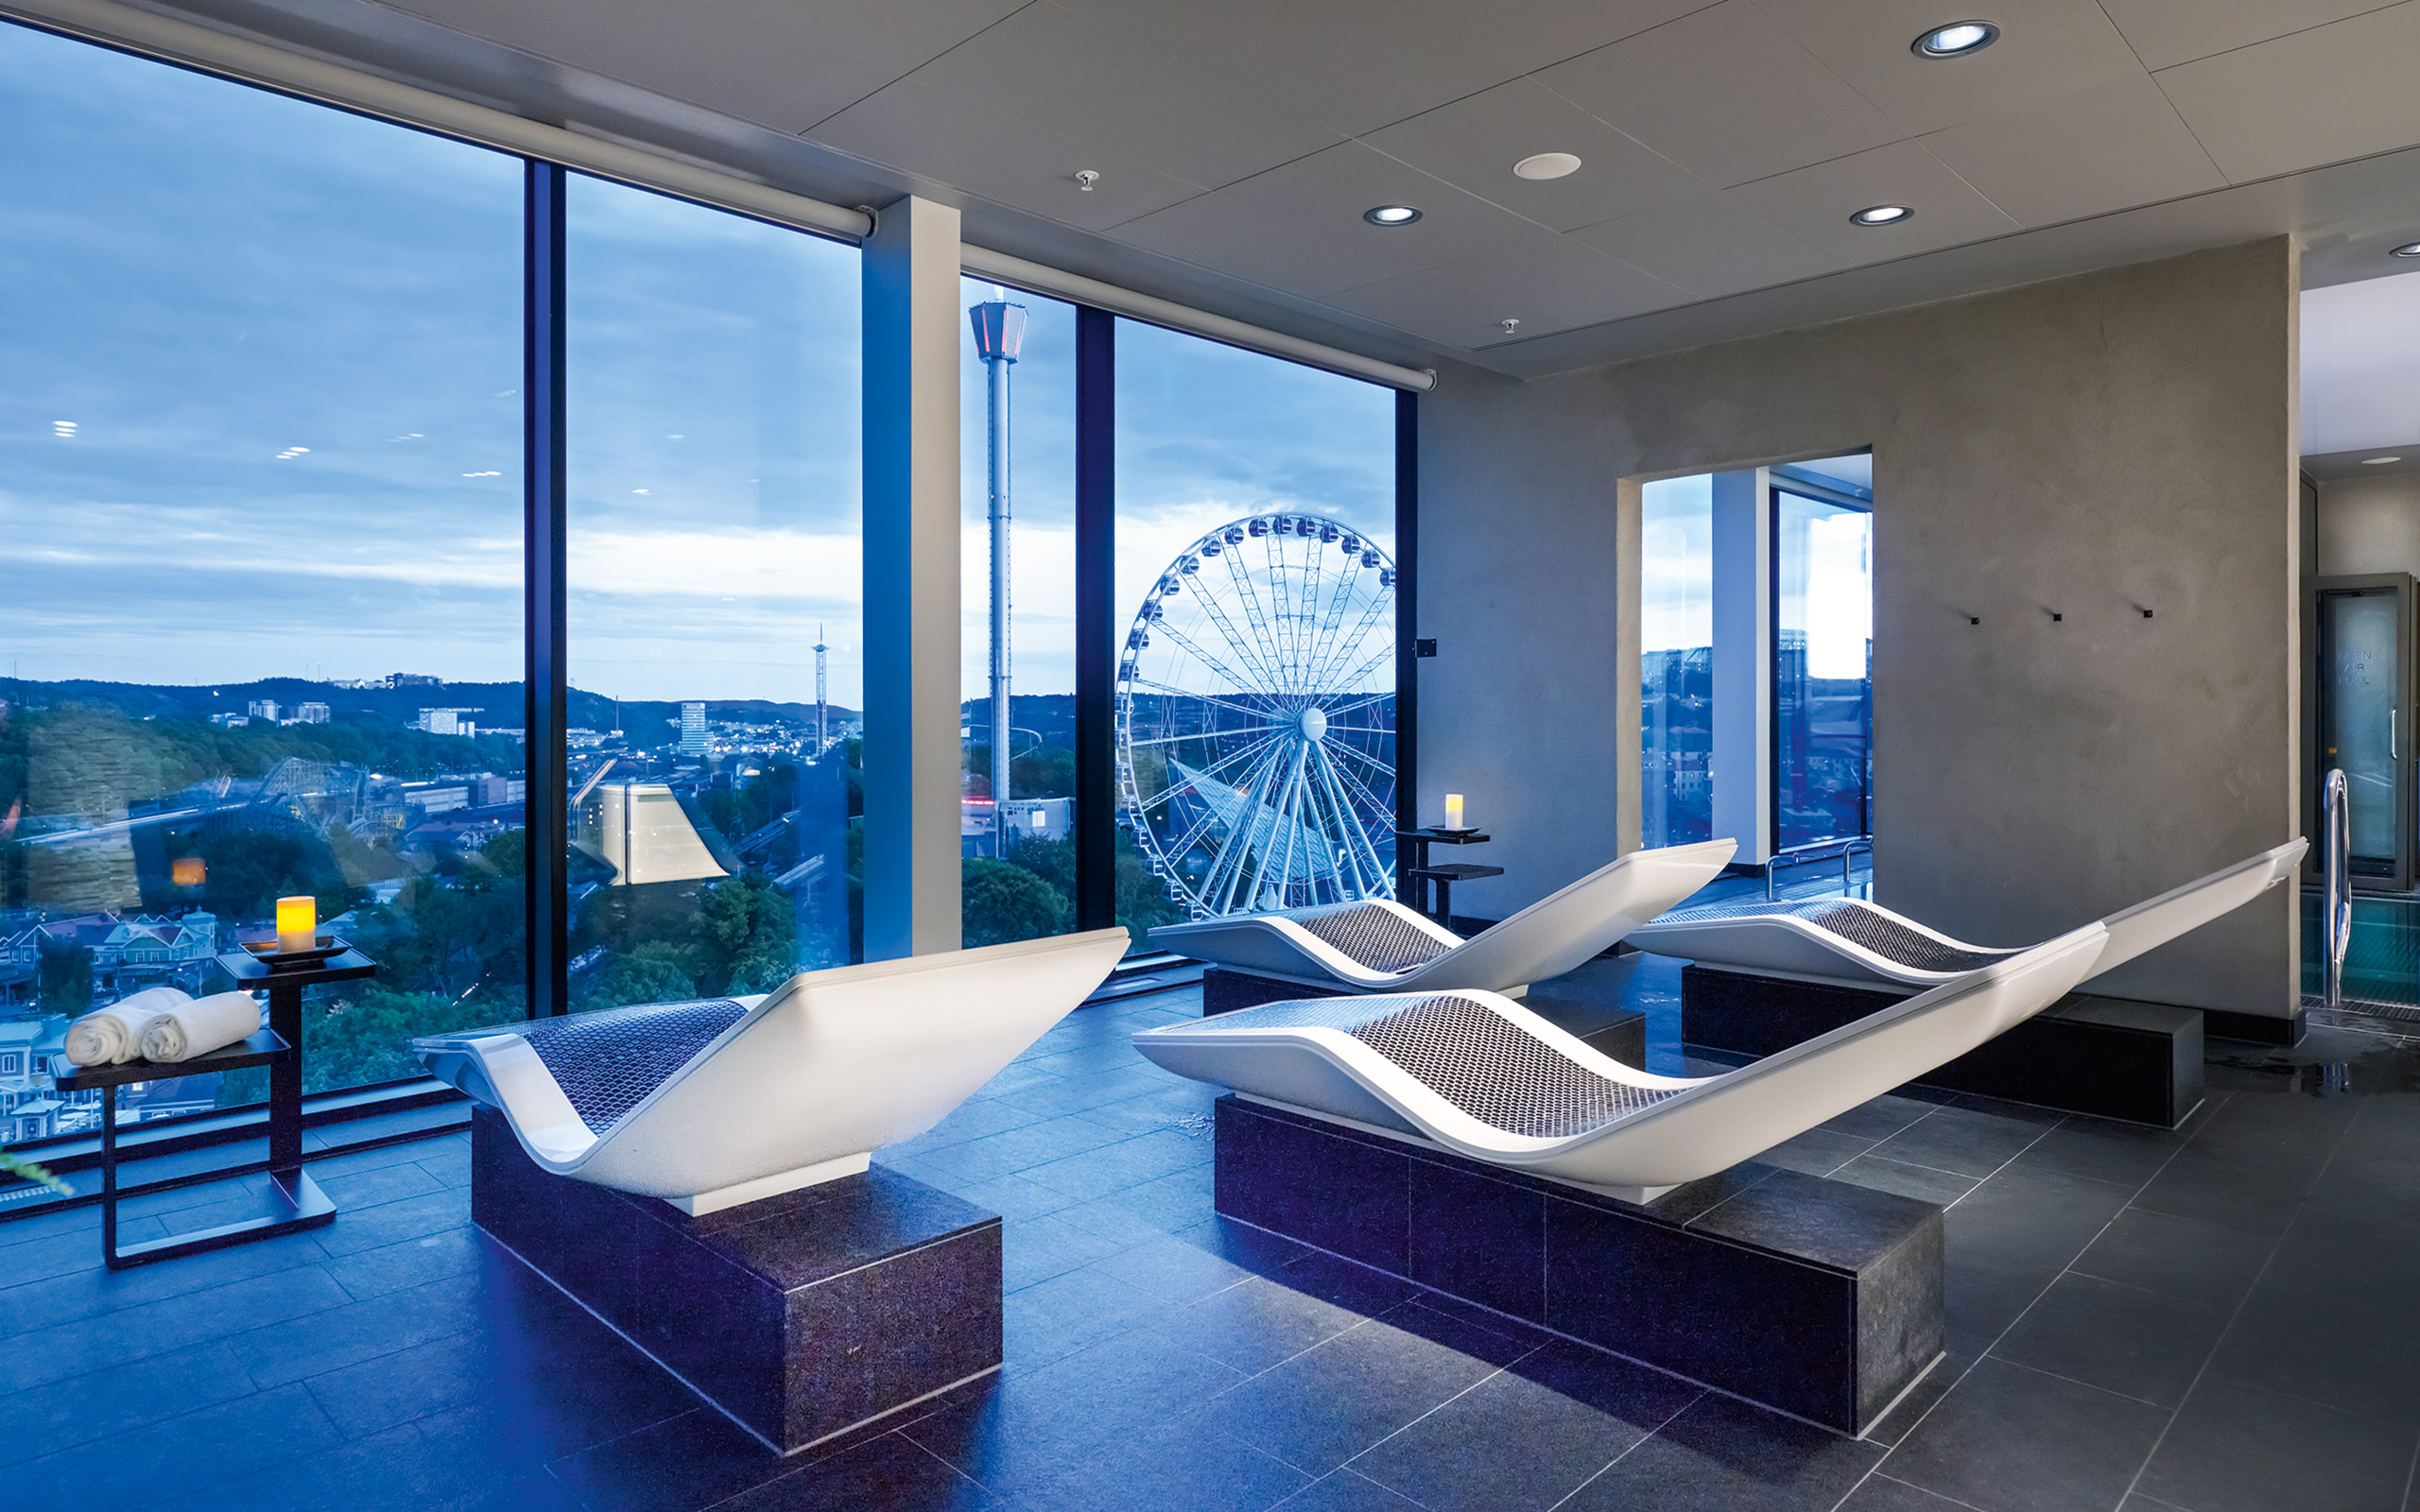 Upper House Gothia Towers Hotel References Klafs